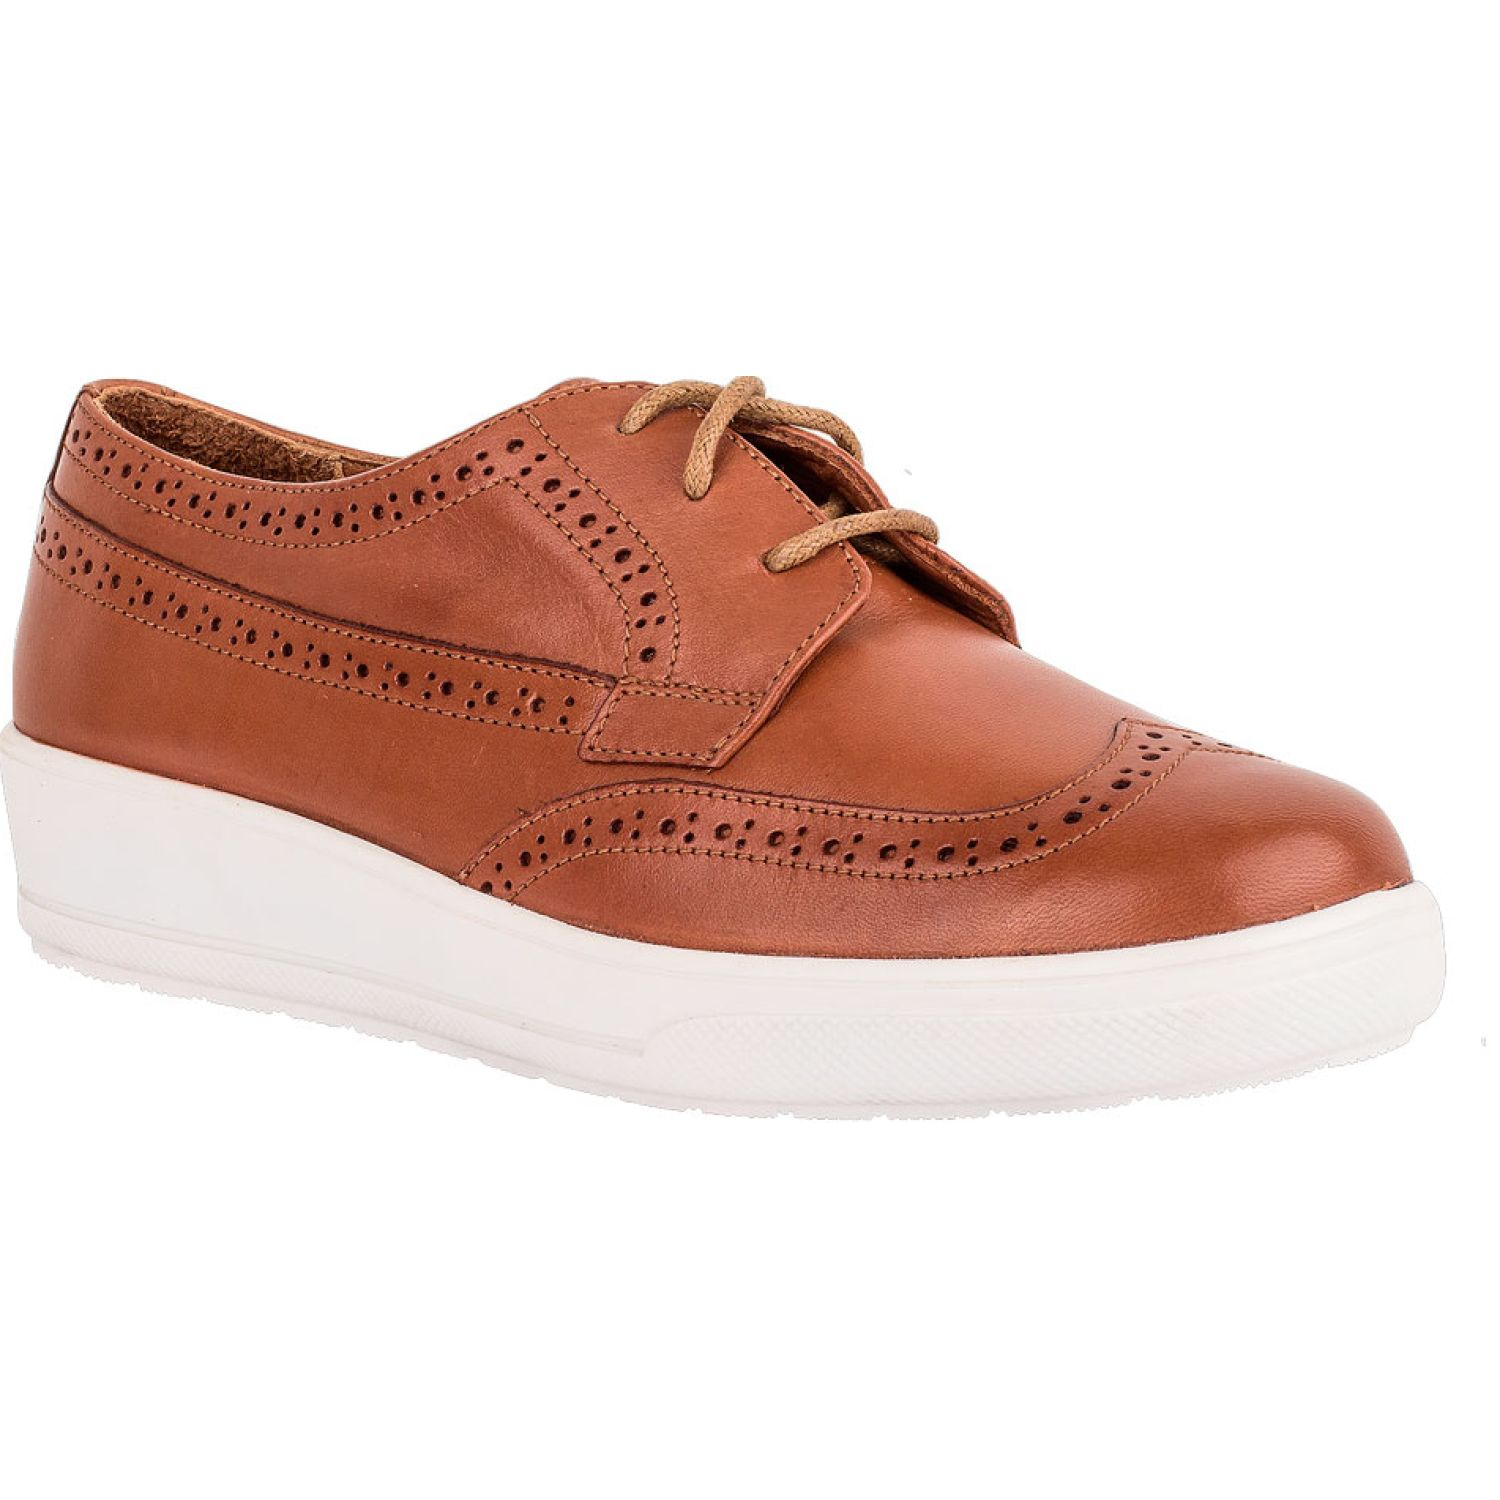 Ecco Santal06 Marron Zapatillas Fashion